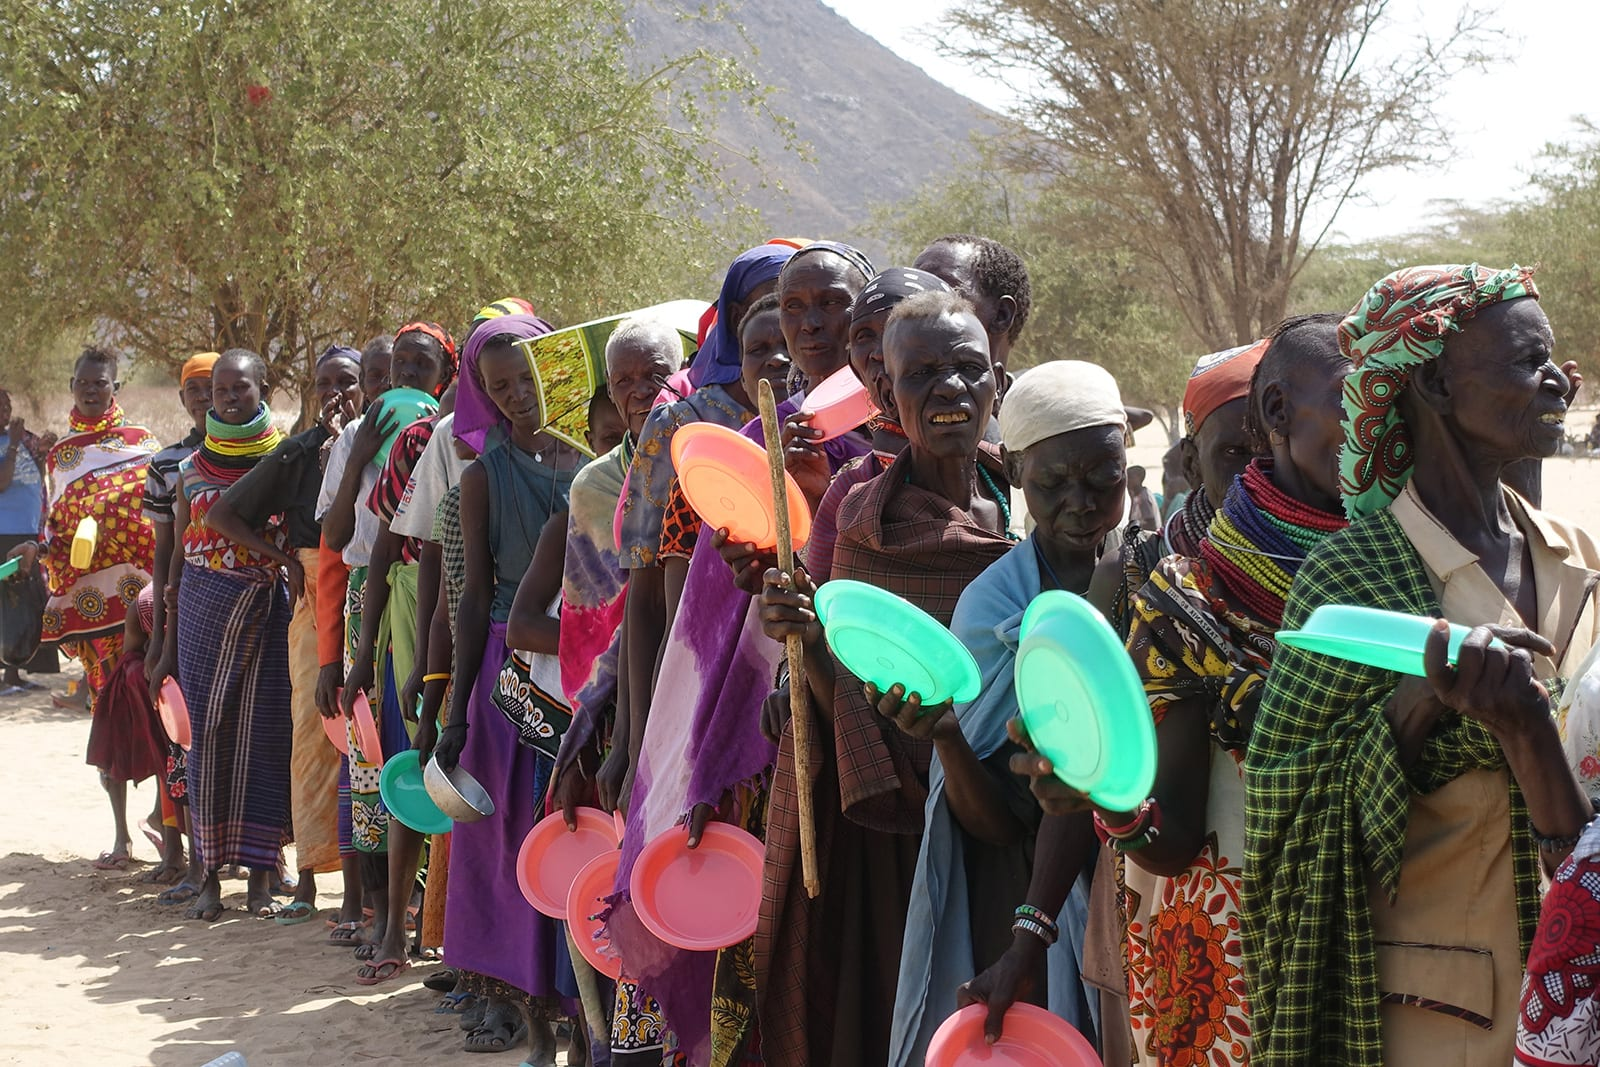 Community lined up for food in Kenya